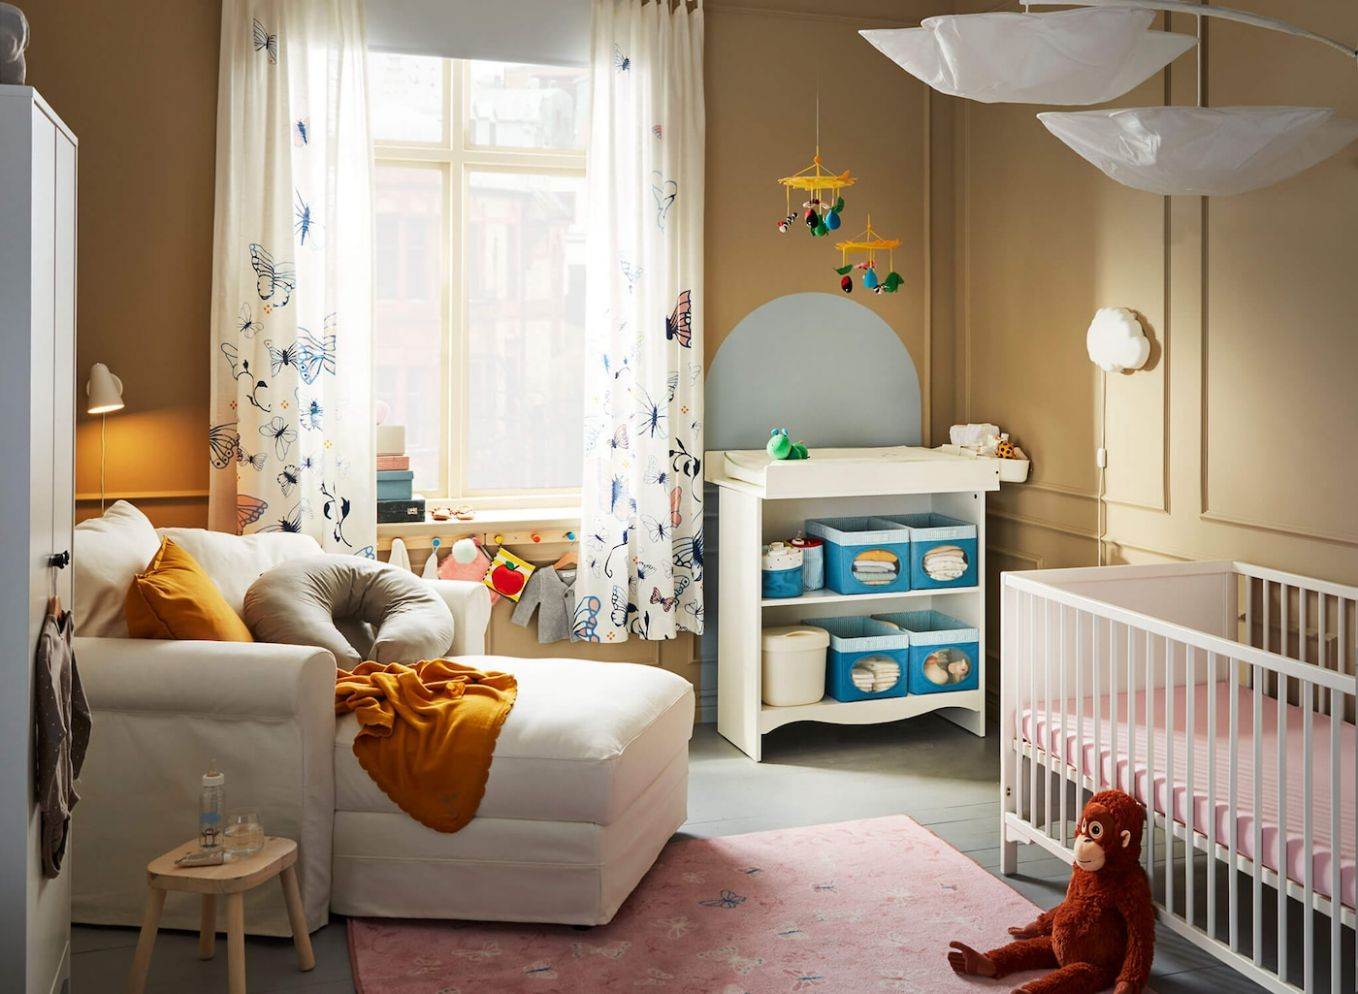 Baby Furniture - Rooms - IKEA - baby room photos